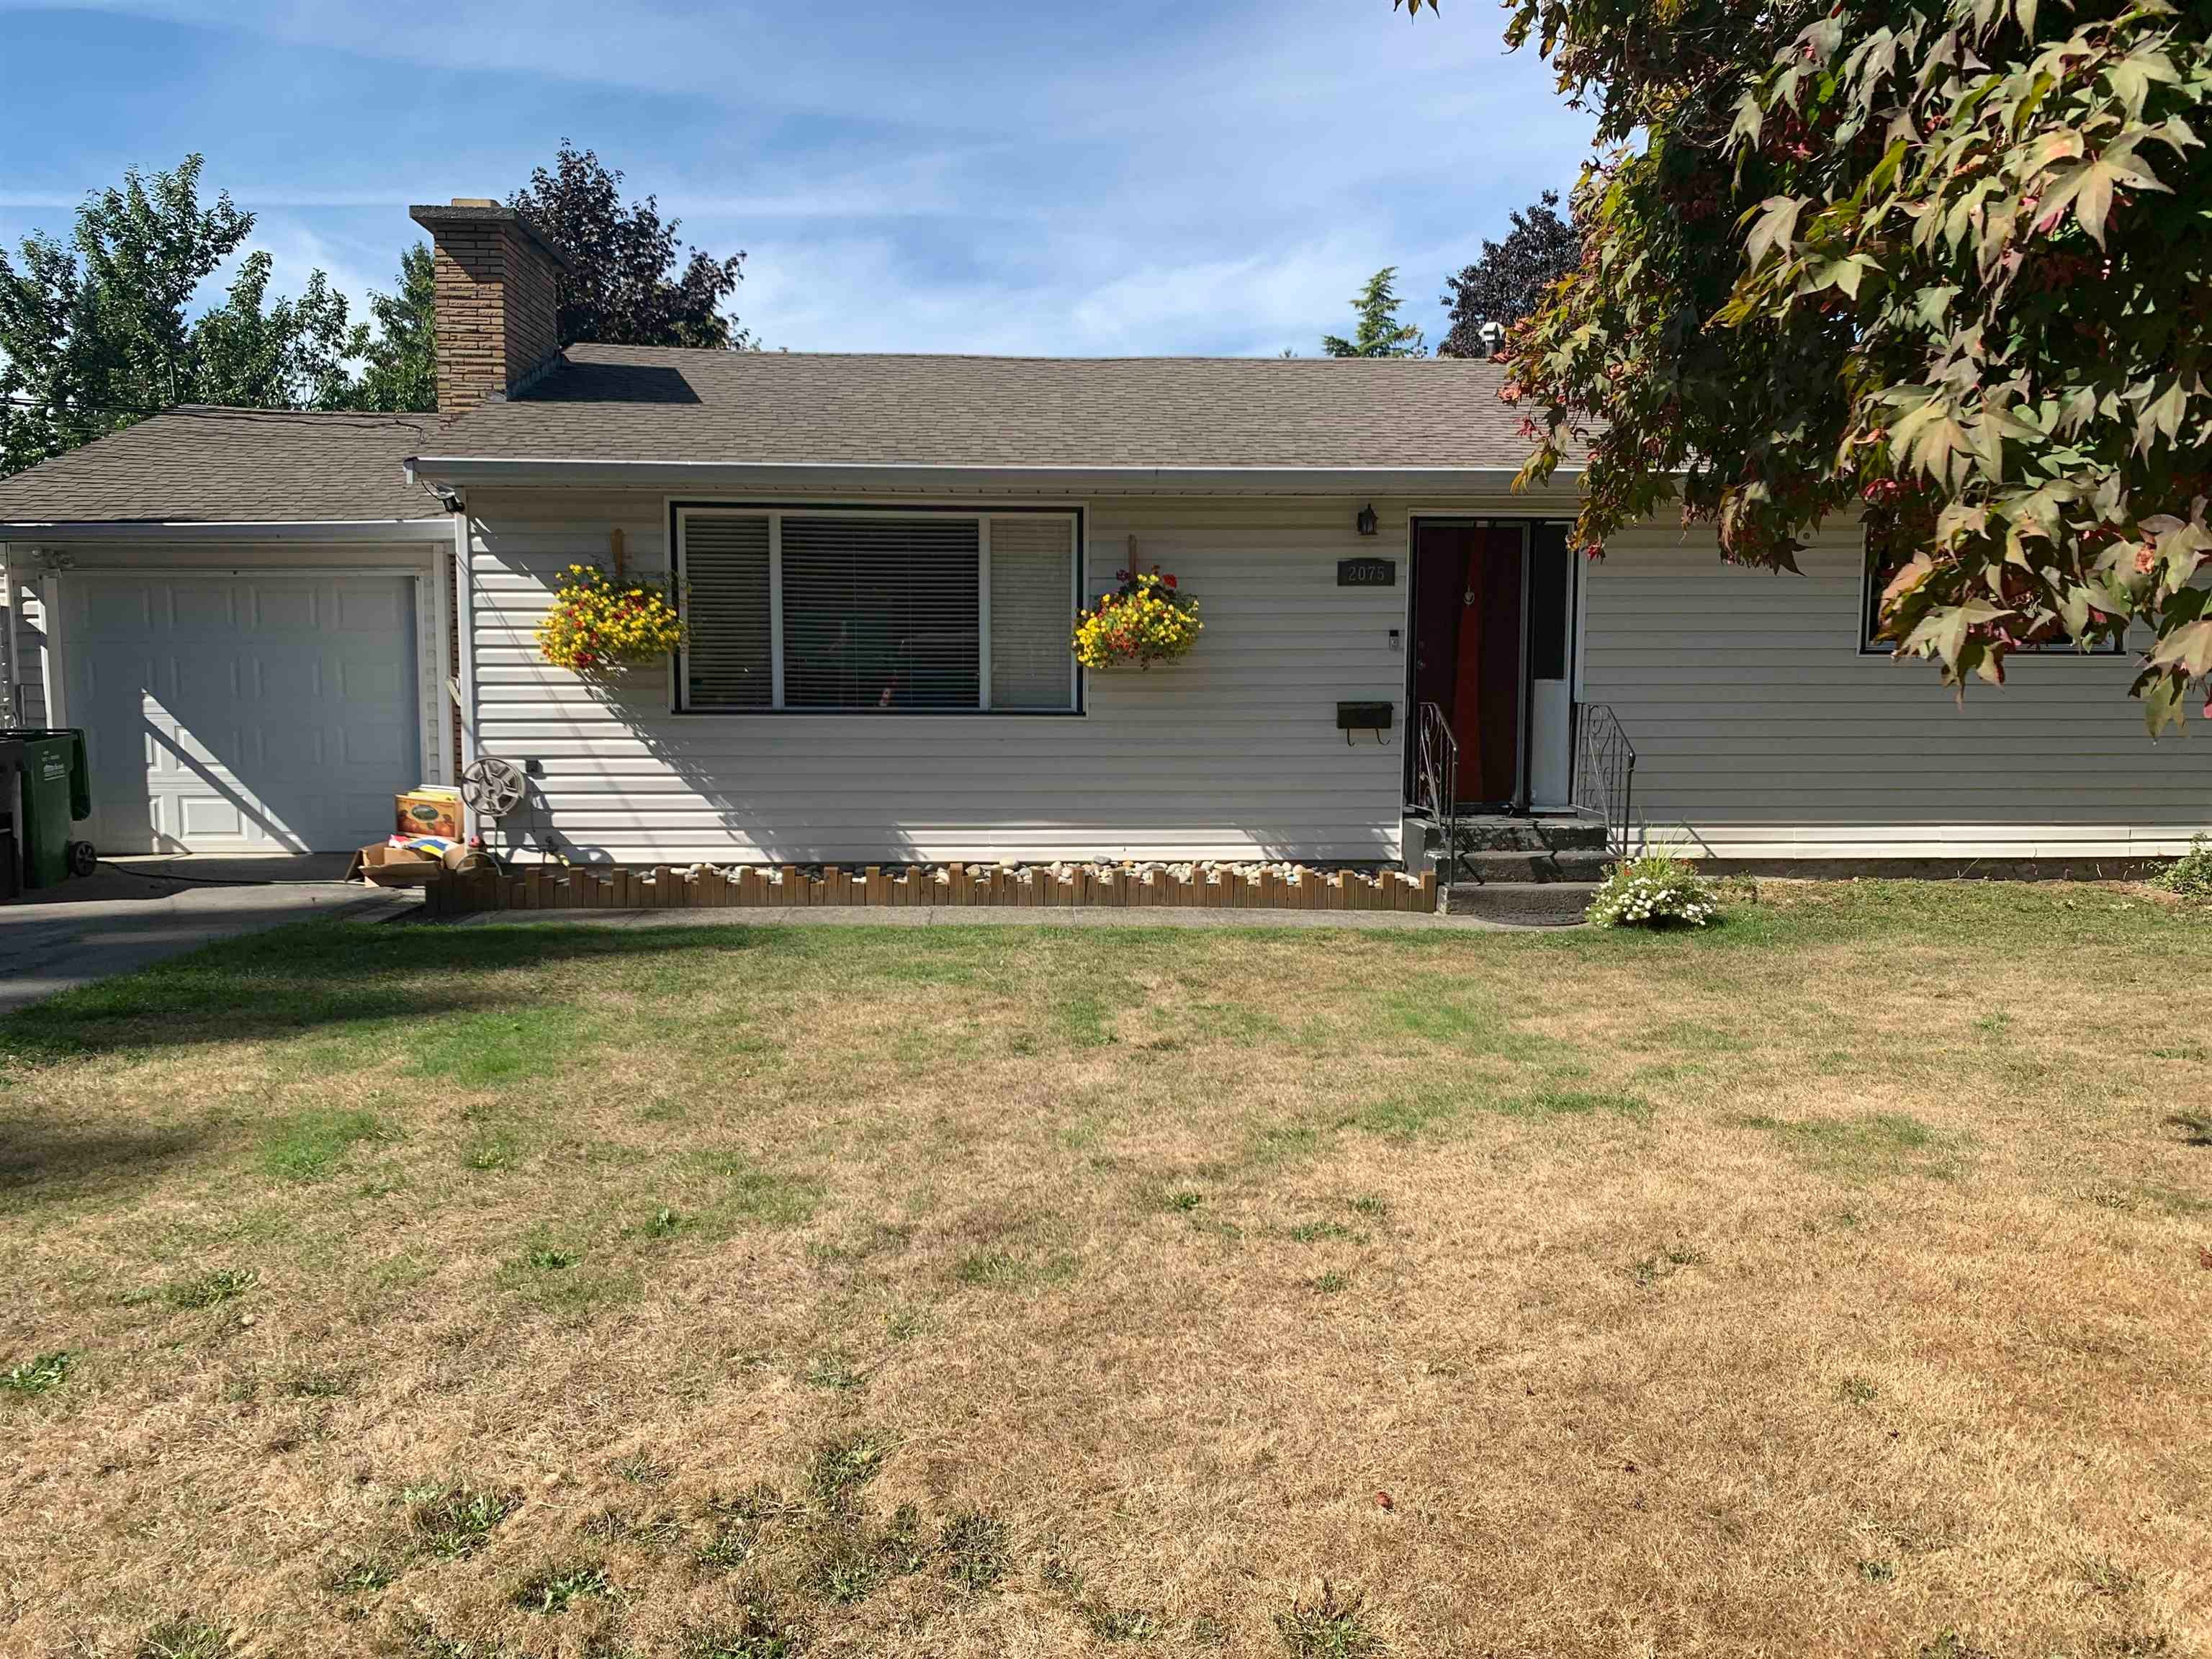 2075 WILLOW STREET - Central Abbotsford House/Single Family for sale, 5 Bedrooms (R2616161) - #2